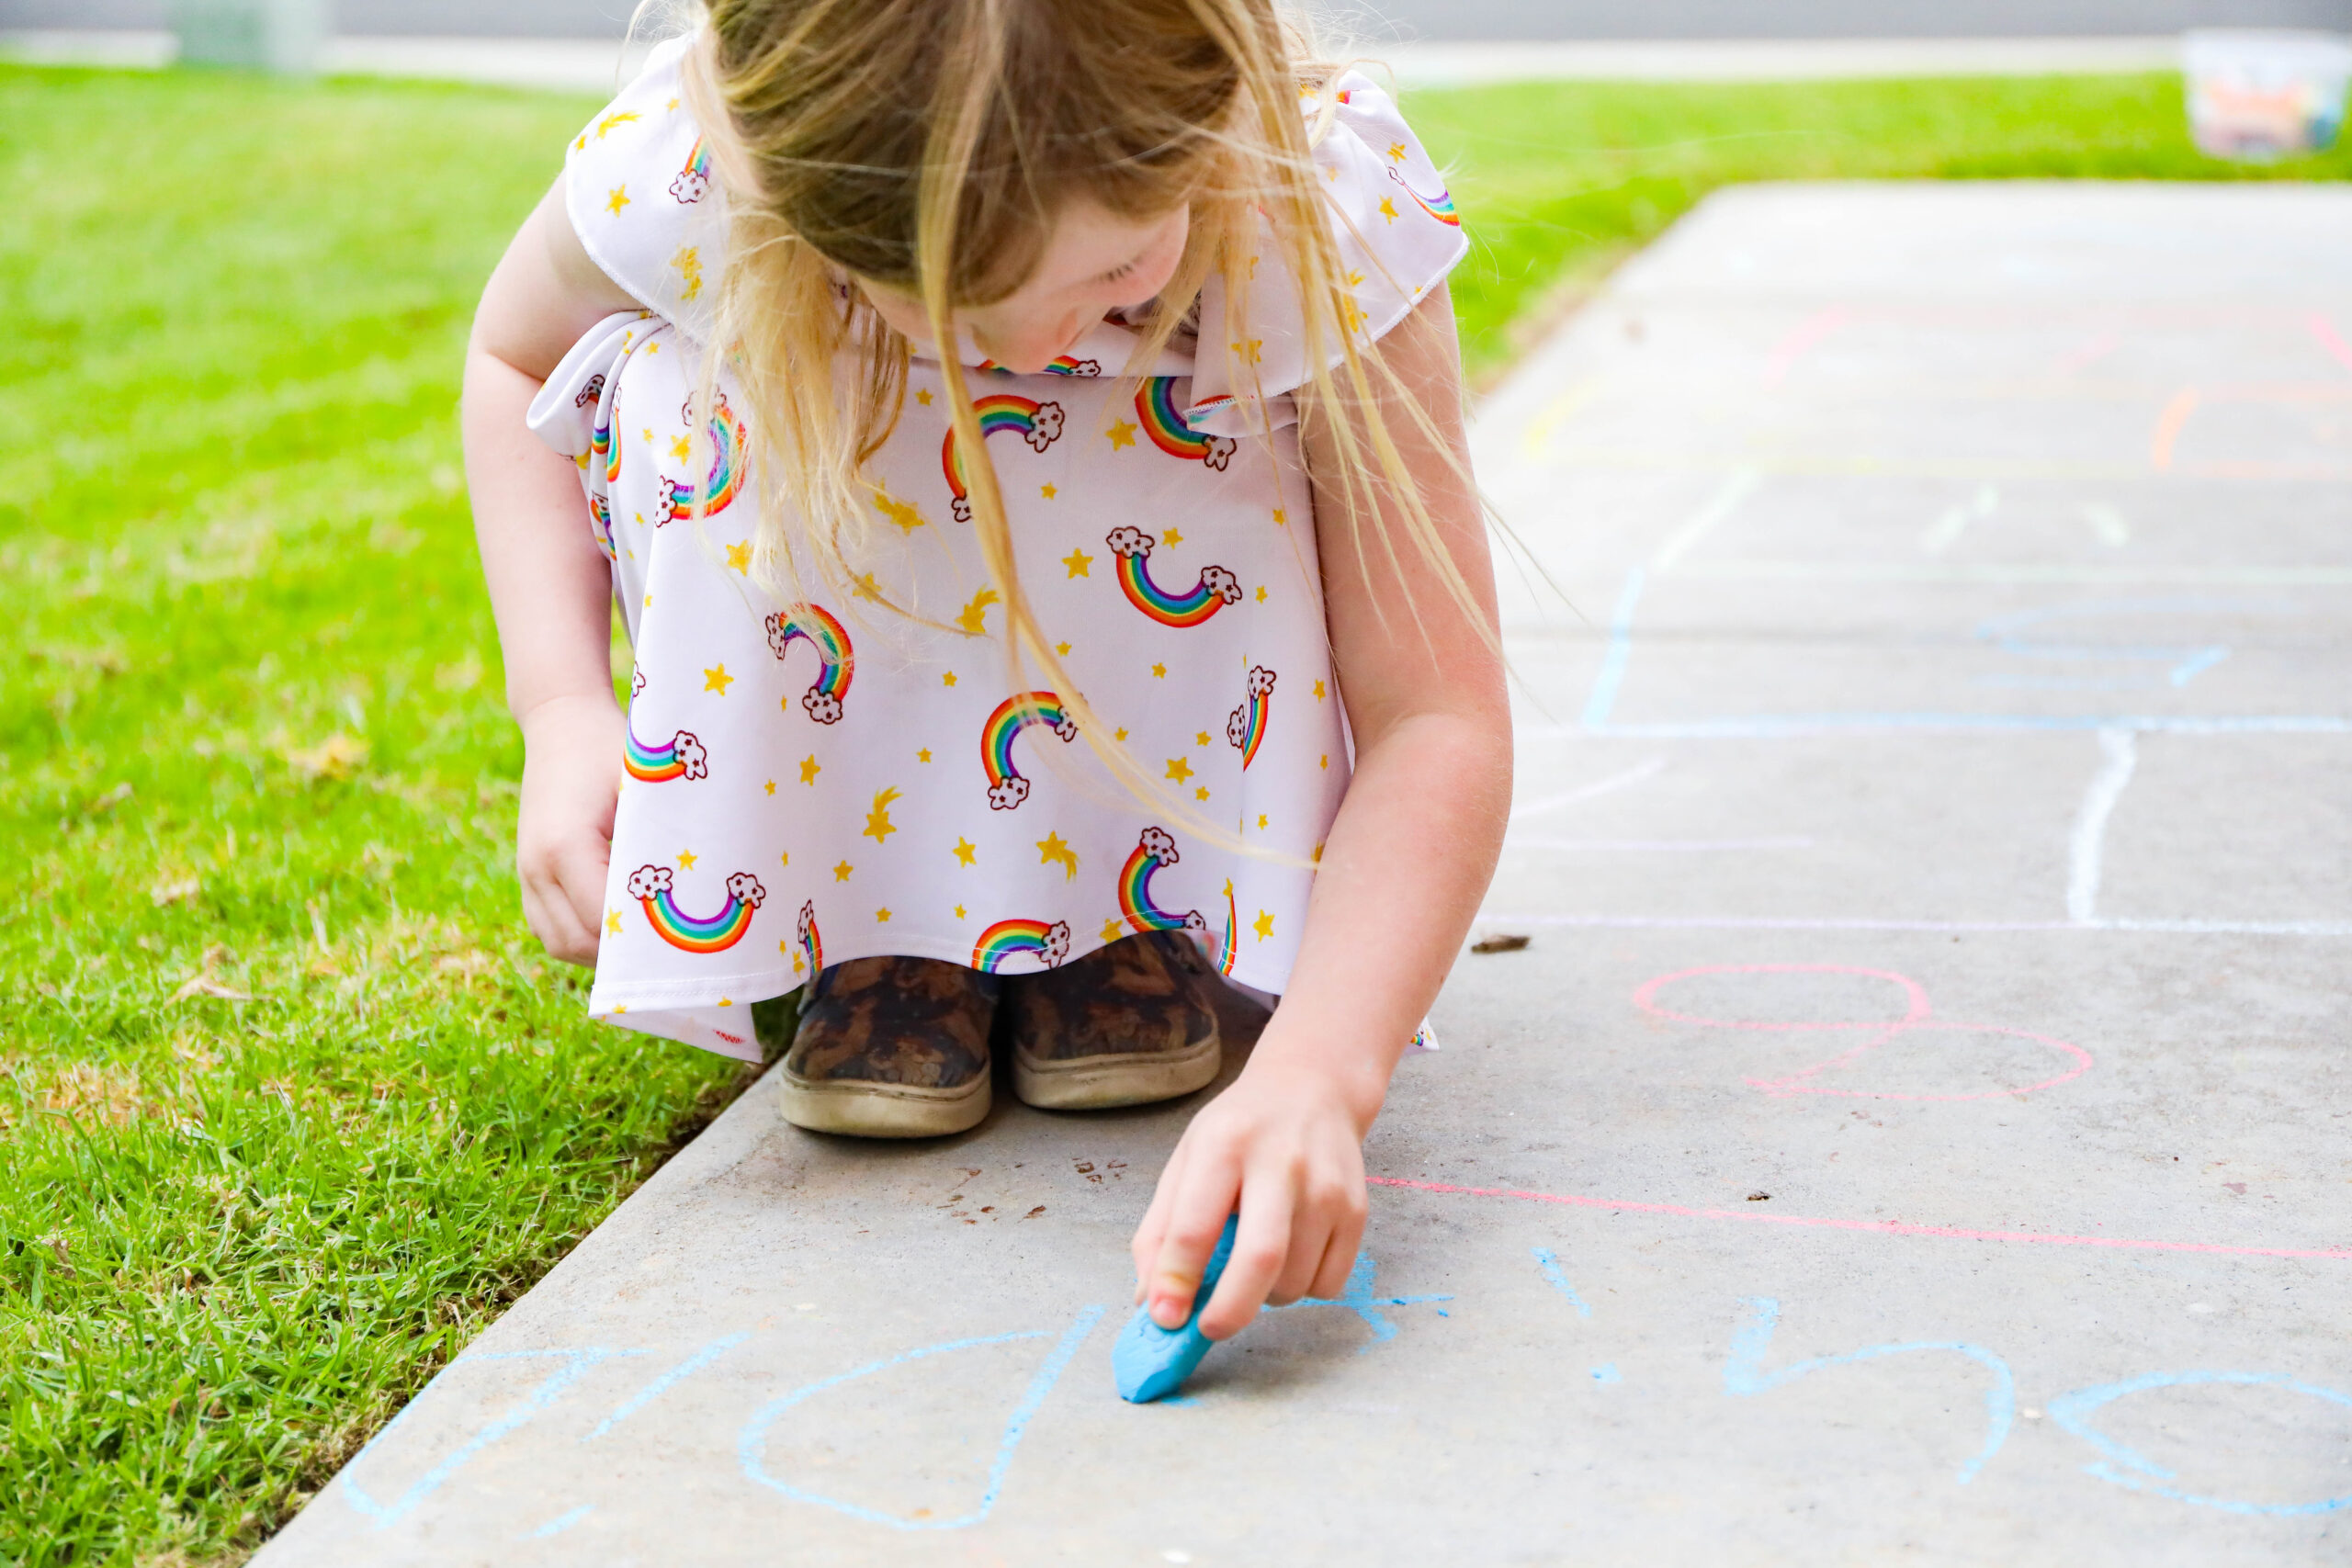 Looking for super fun play ideas you can implement in your driveway? These sidewalk chalk ideas take minimal prep and are a ton of fun!